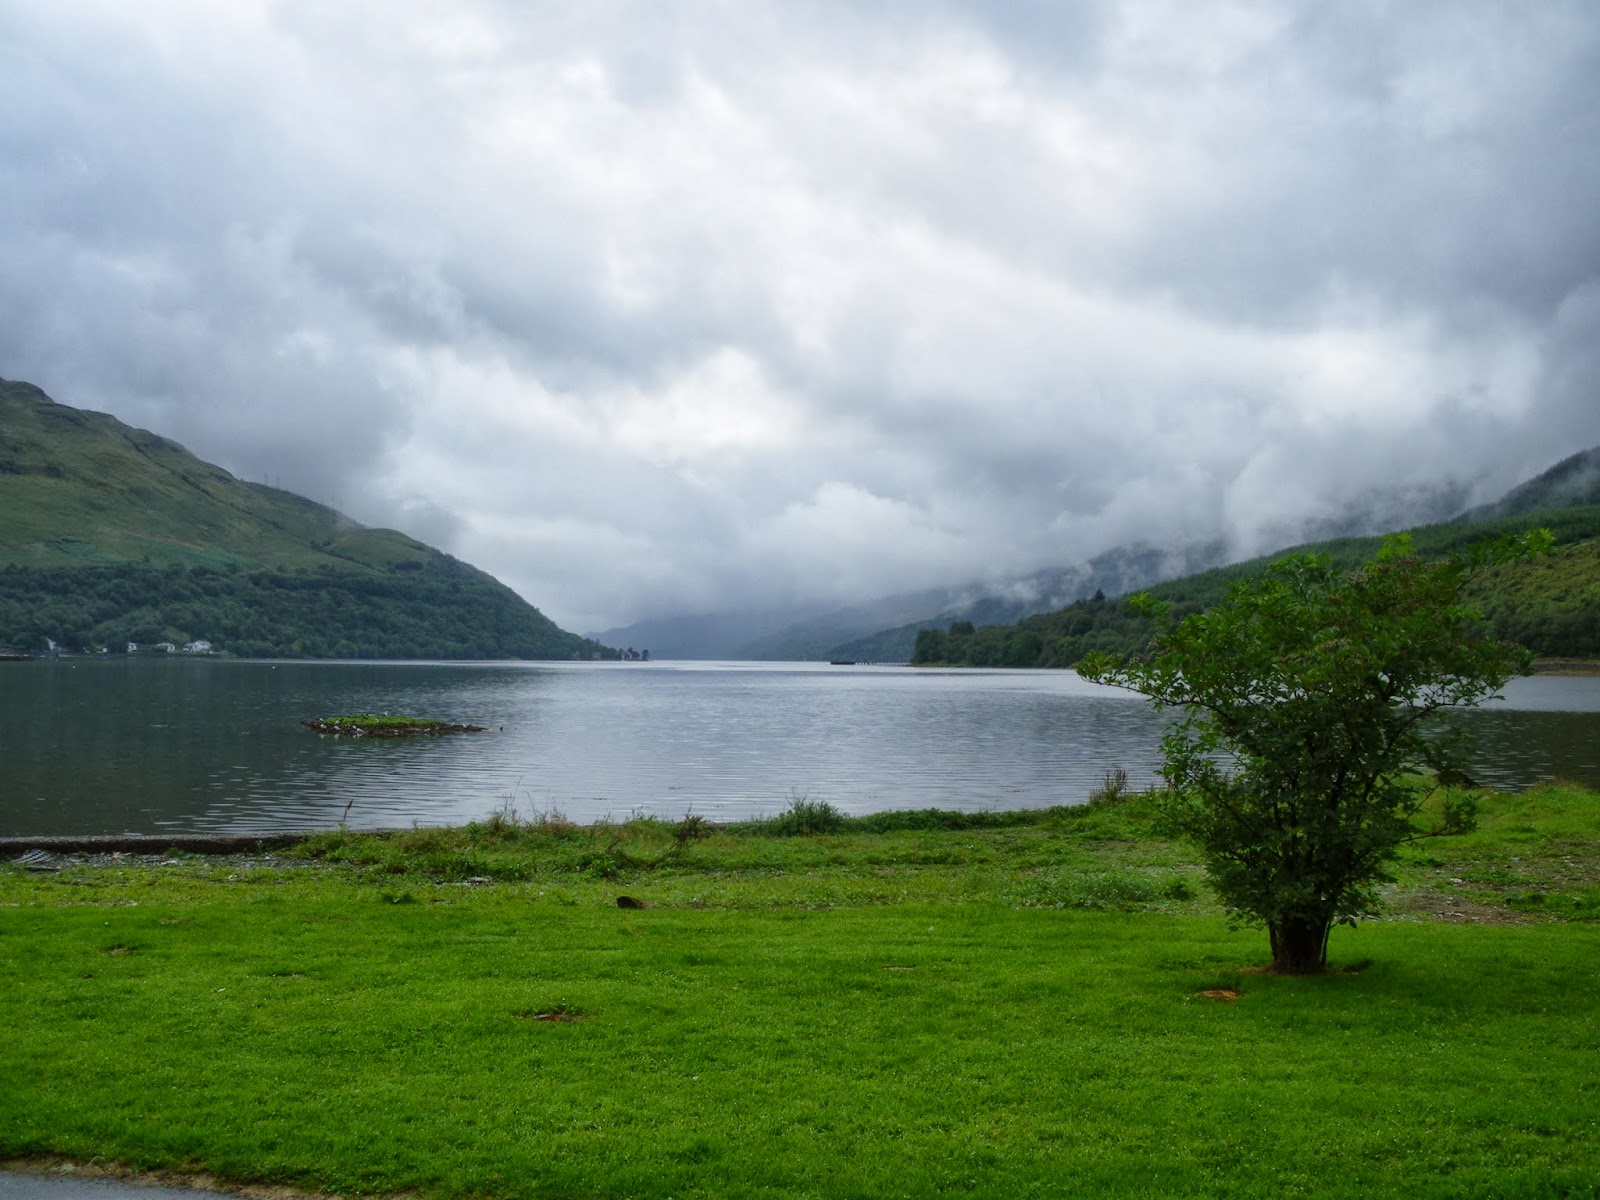 Loch Long, Escocia, Scotland, Regne Unit, United Kingdom